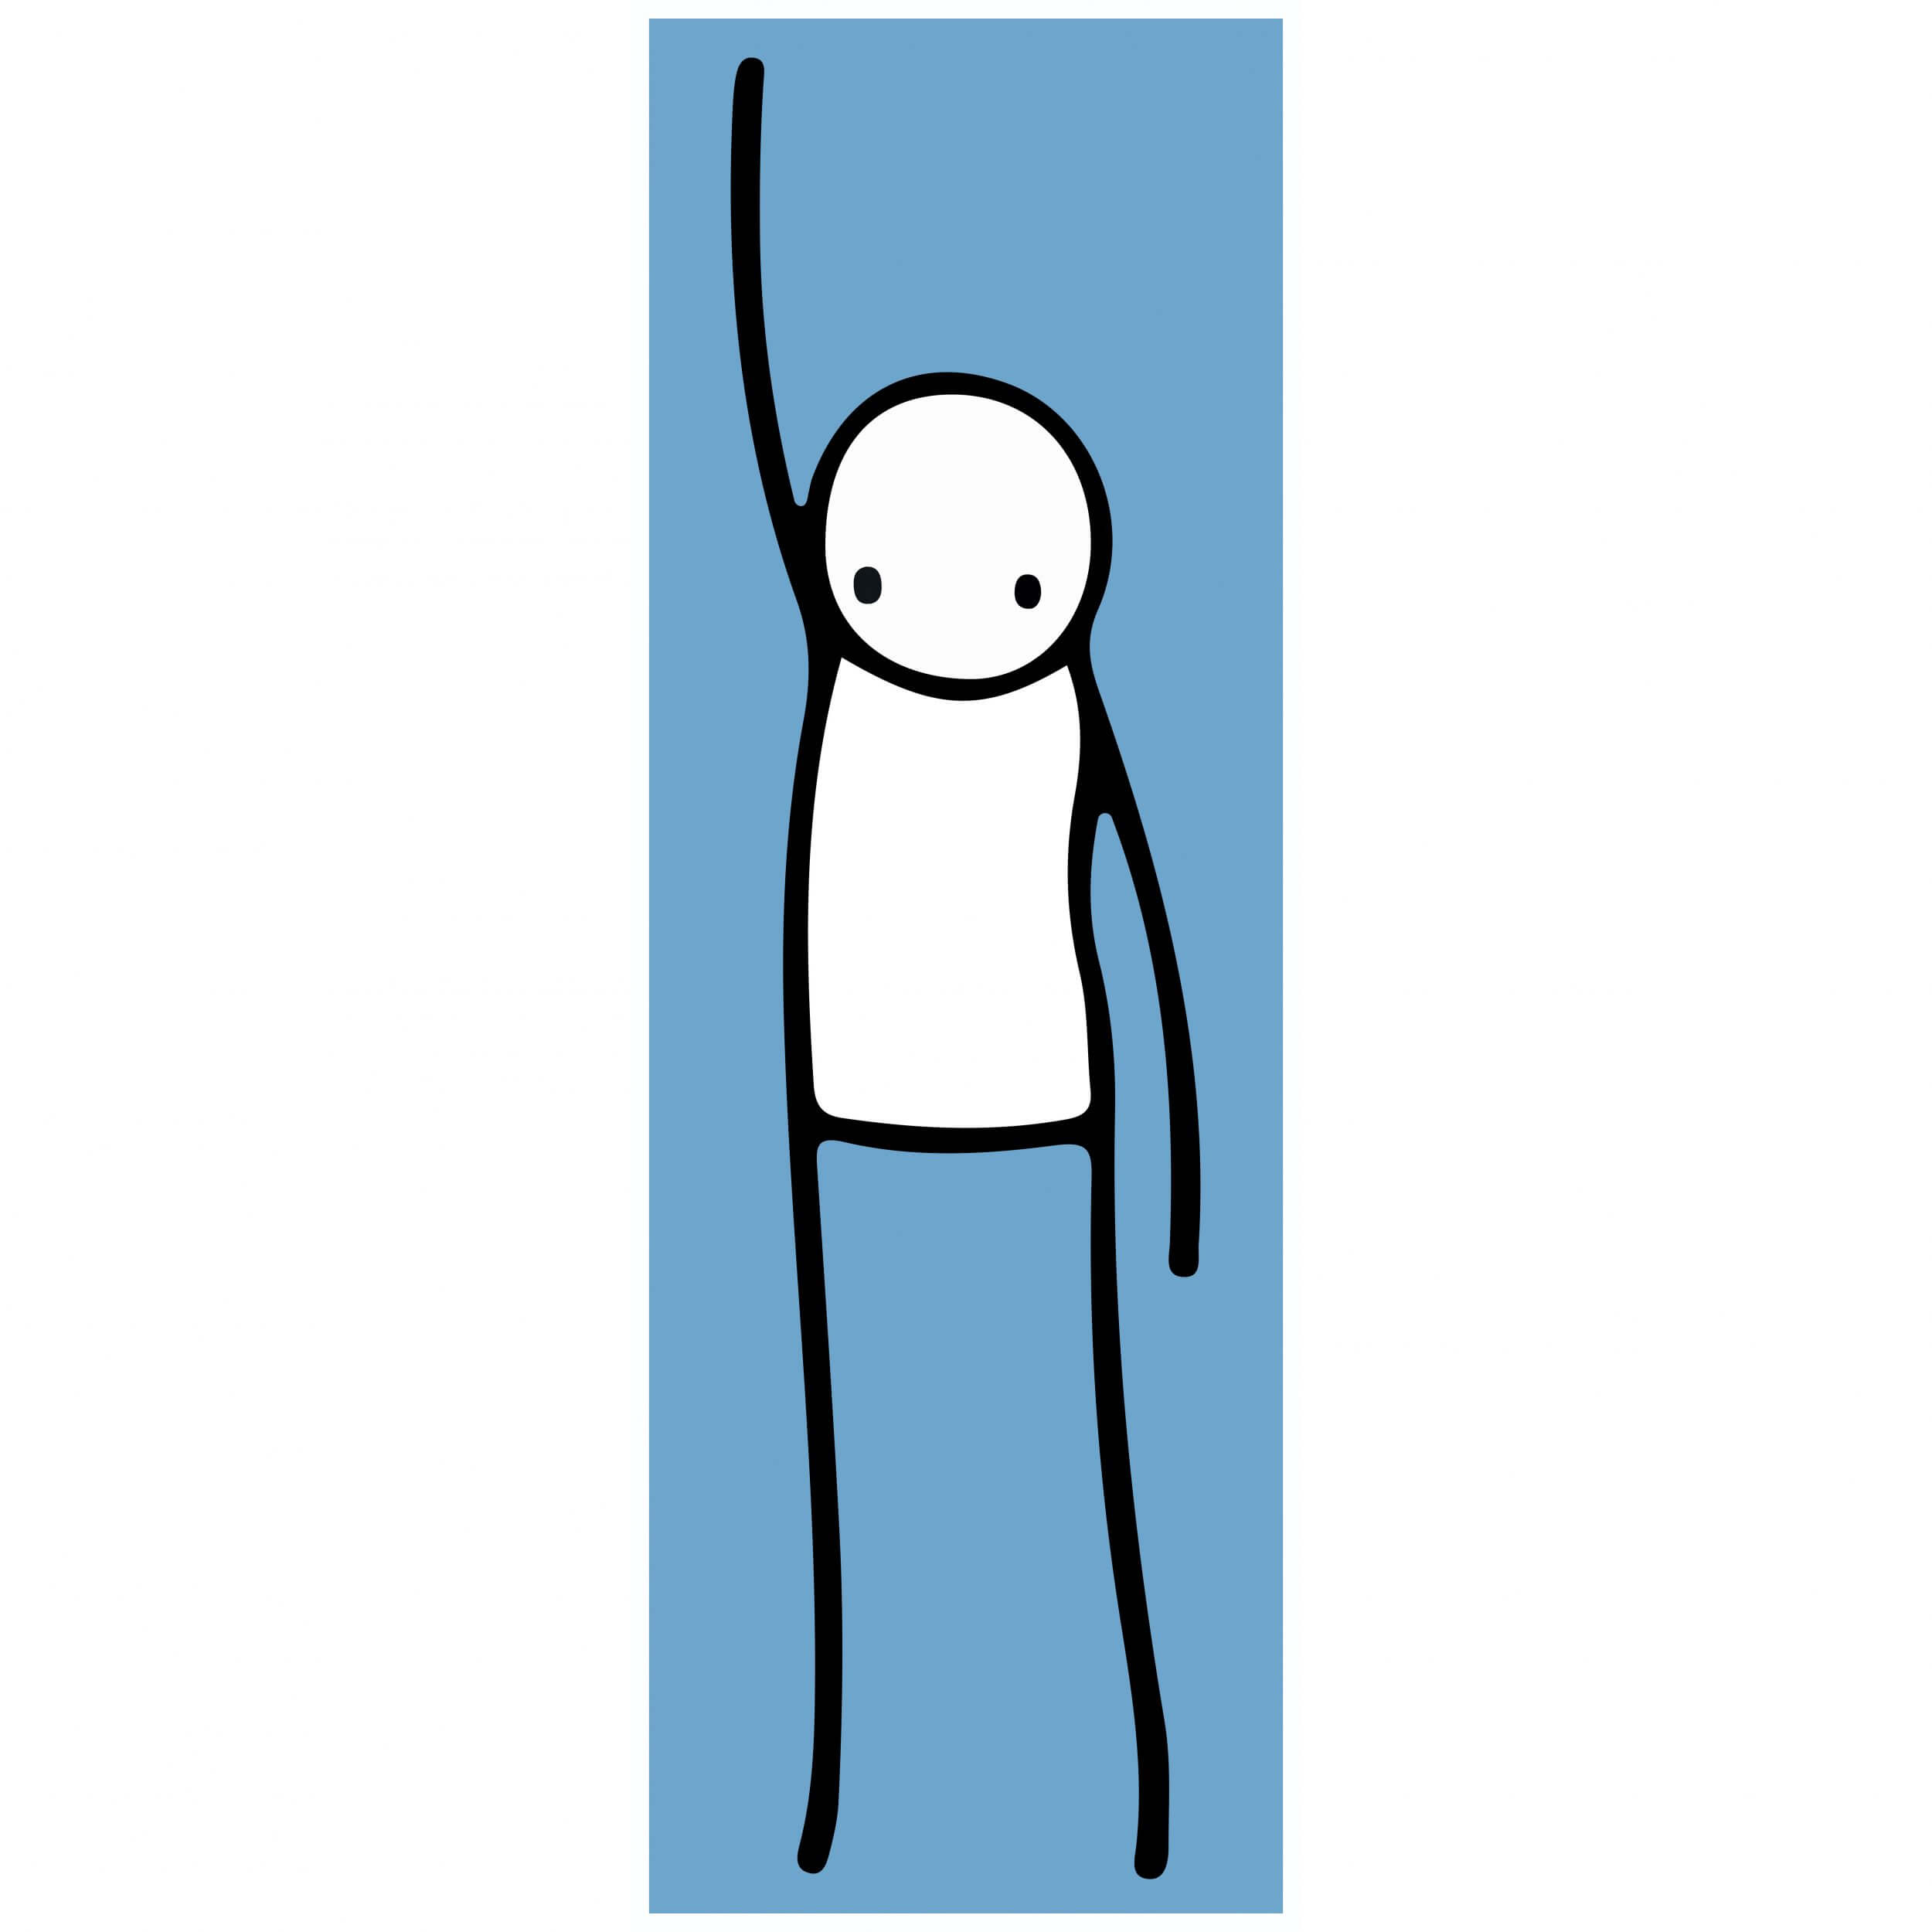 Stik - Liberty (blue) Print